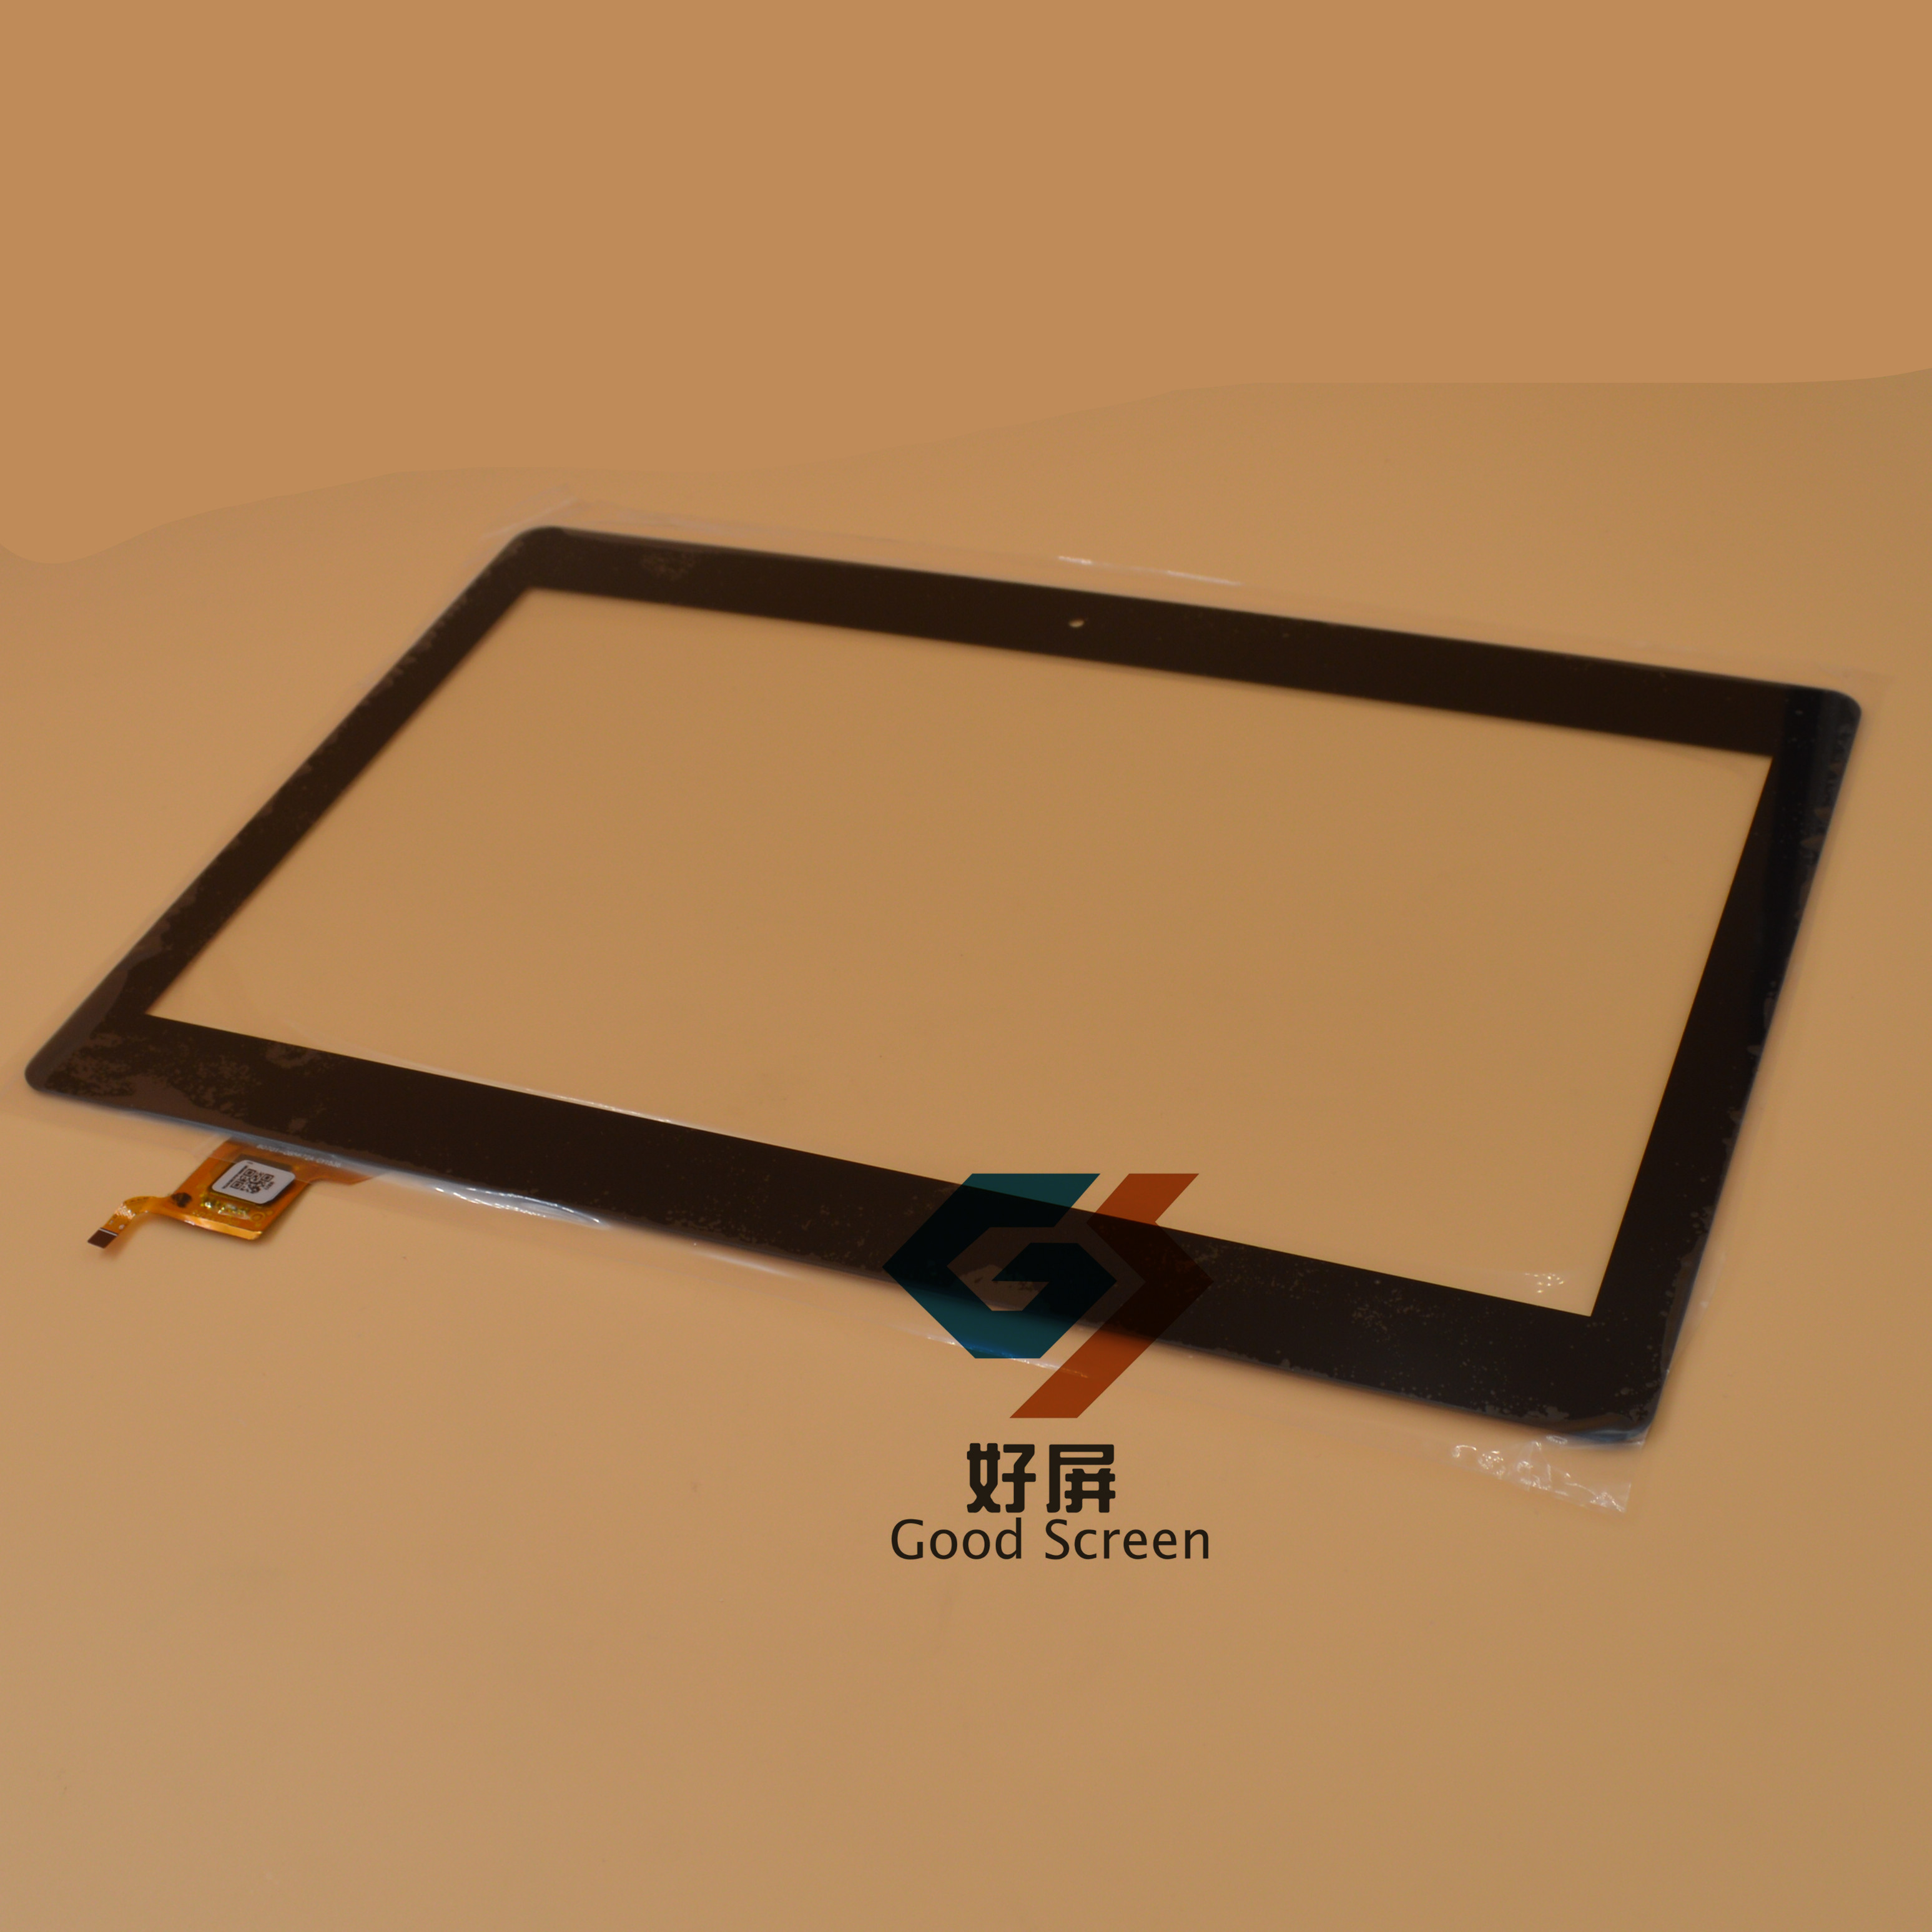 FCF0485-1116 11.6inch capacitive touch screen glass digitizer panel for nextbook tablet pc<br>